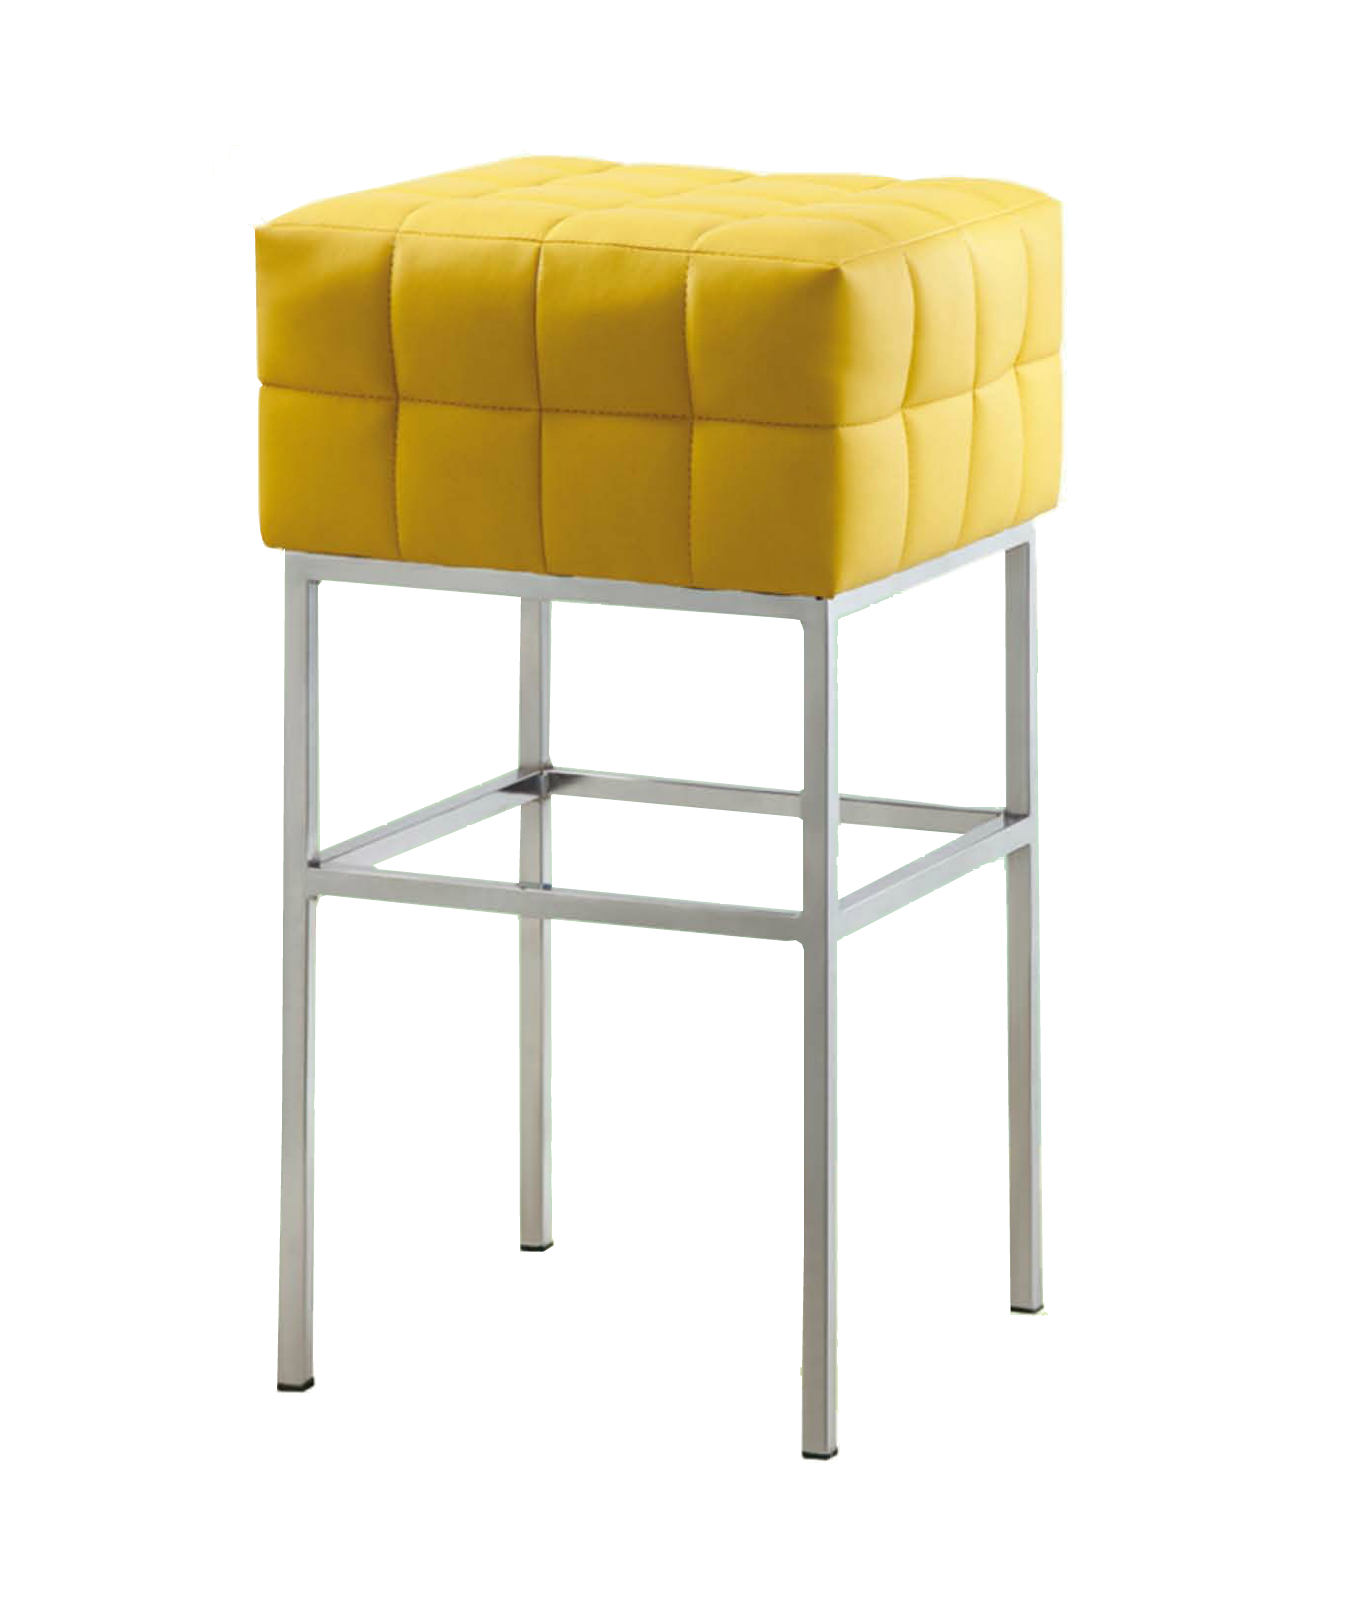 Bar Stool the best quality in malaysia : HS 405 JPEG from www.officegapsupplymalaysia.com size 1360 x 1600 jpeg 275kB